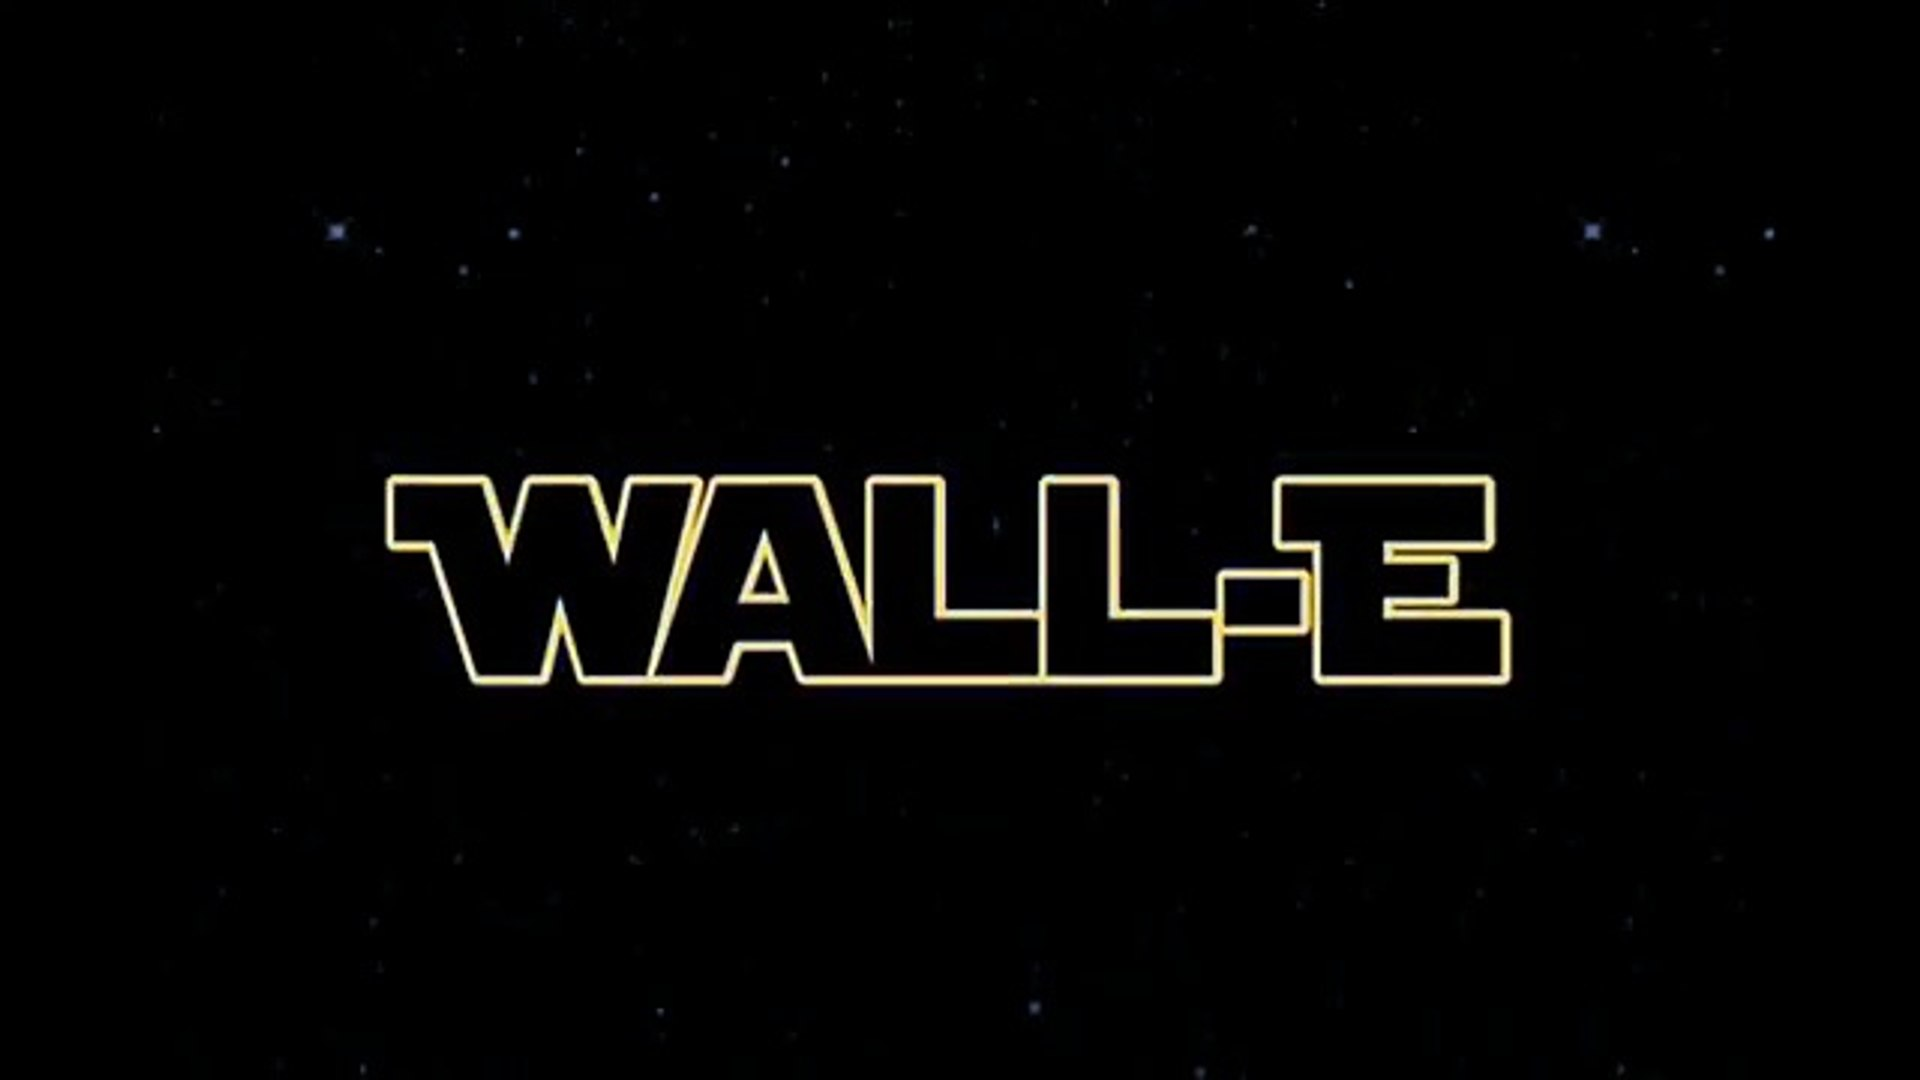 Wall E Star Wars Opening Crawl Video Dailymotion